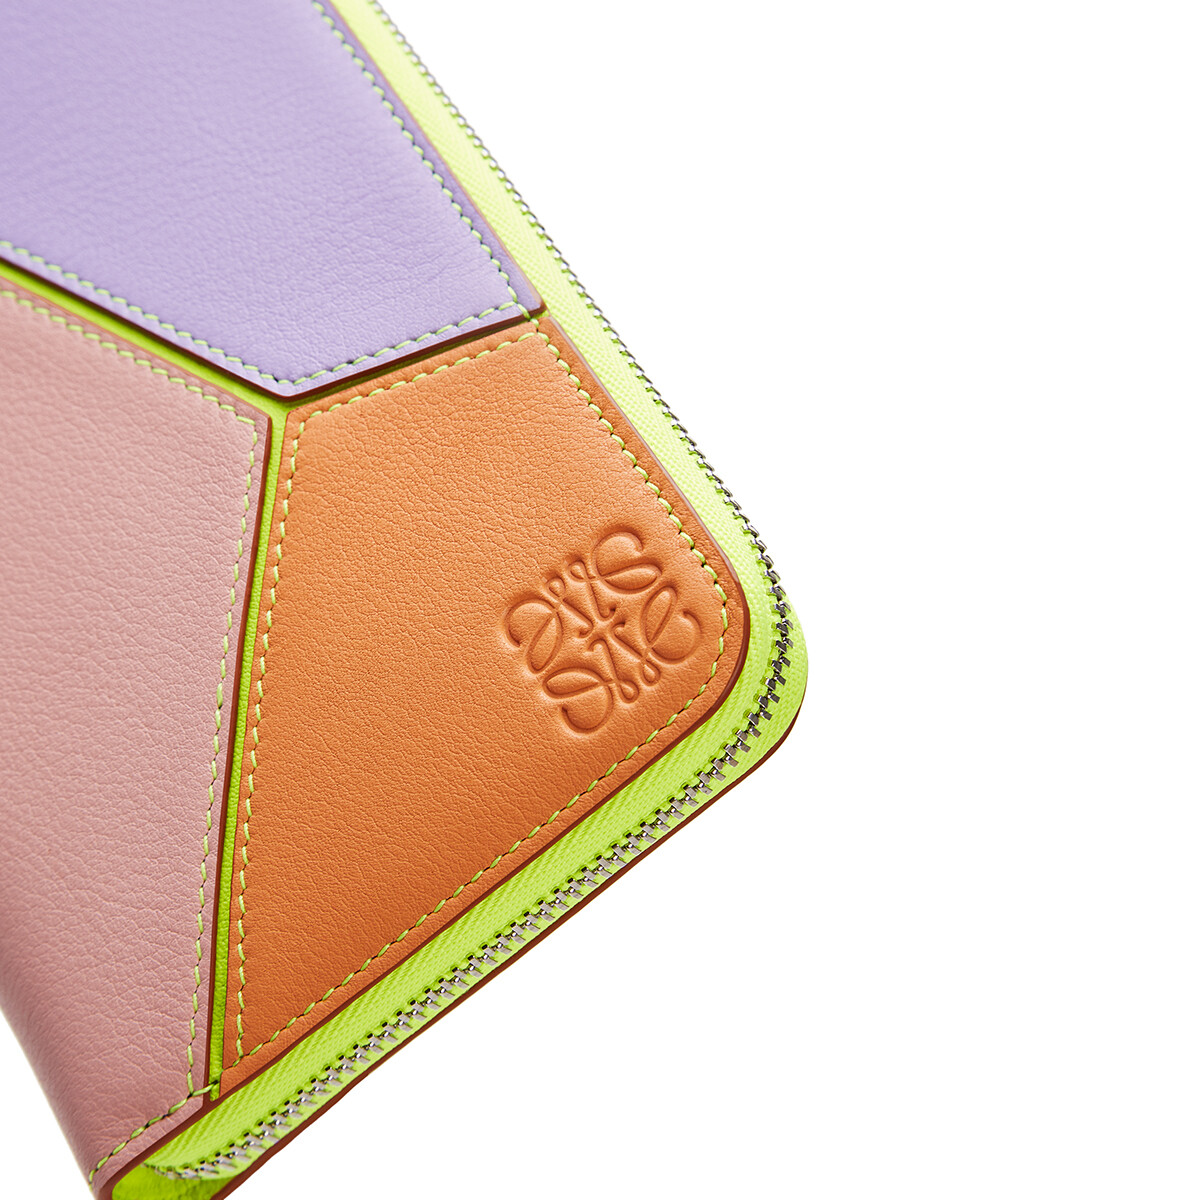 LOEWE Puzzle Zip Around Wallet In Classic Calfskin Mauve/Soft Apricot front